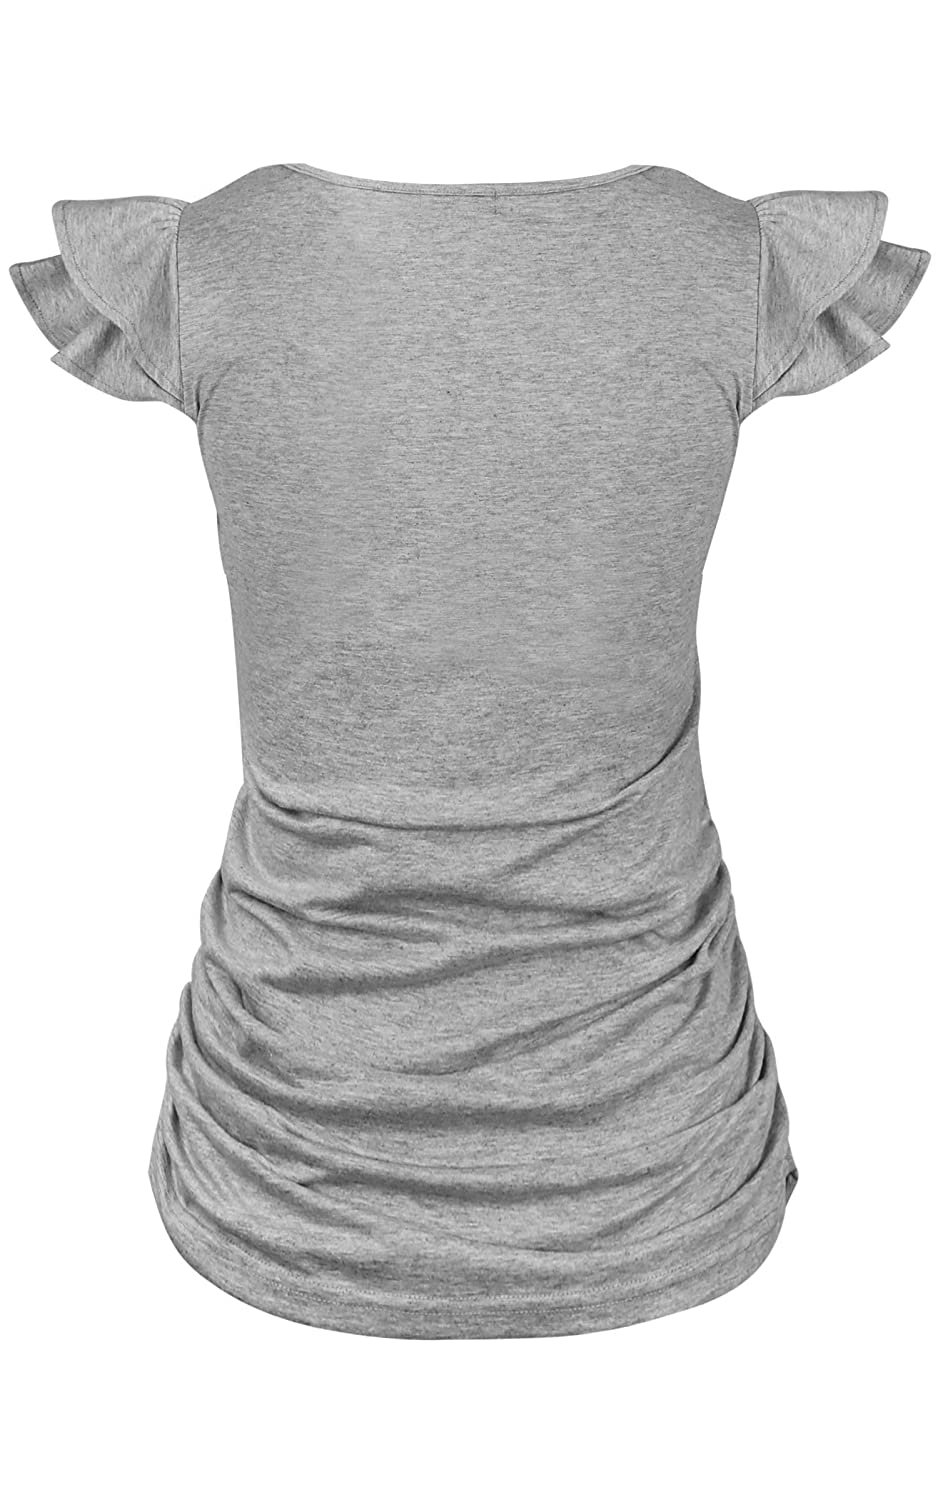 Molliya Maternity Tops Flying Sleeve Ruched Sides Casual Pregnancy Summer T-Shirt